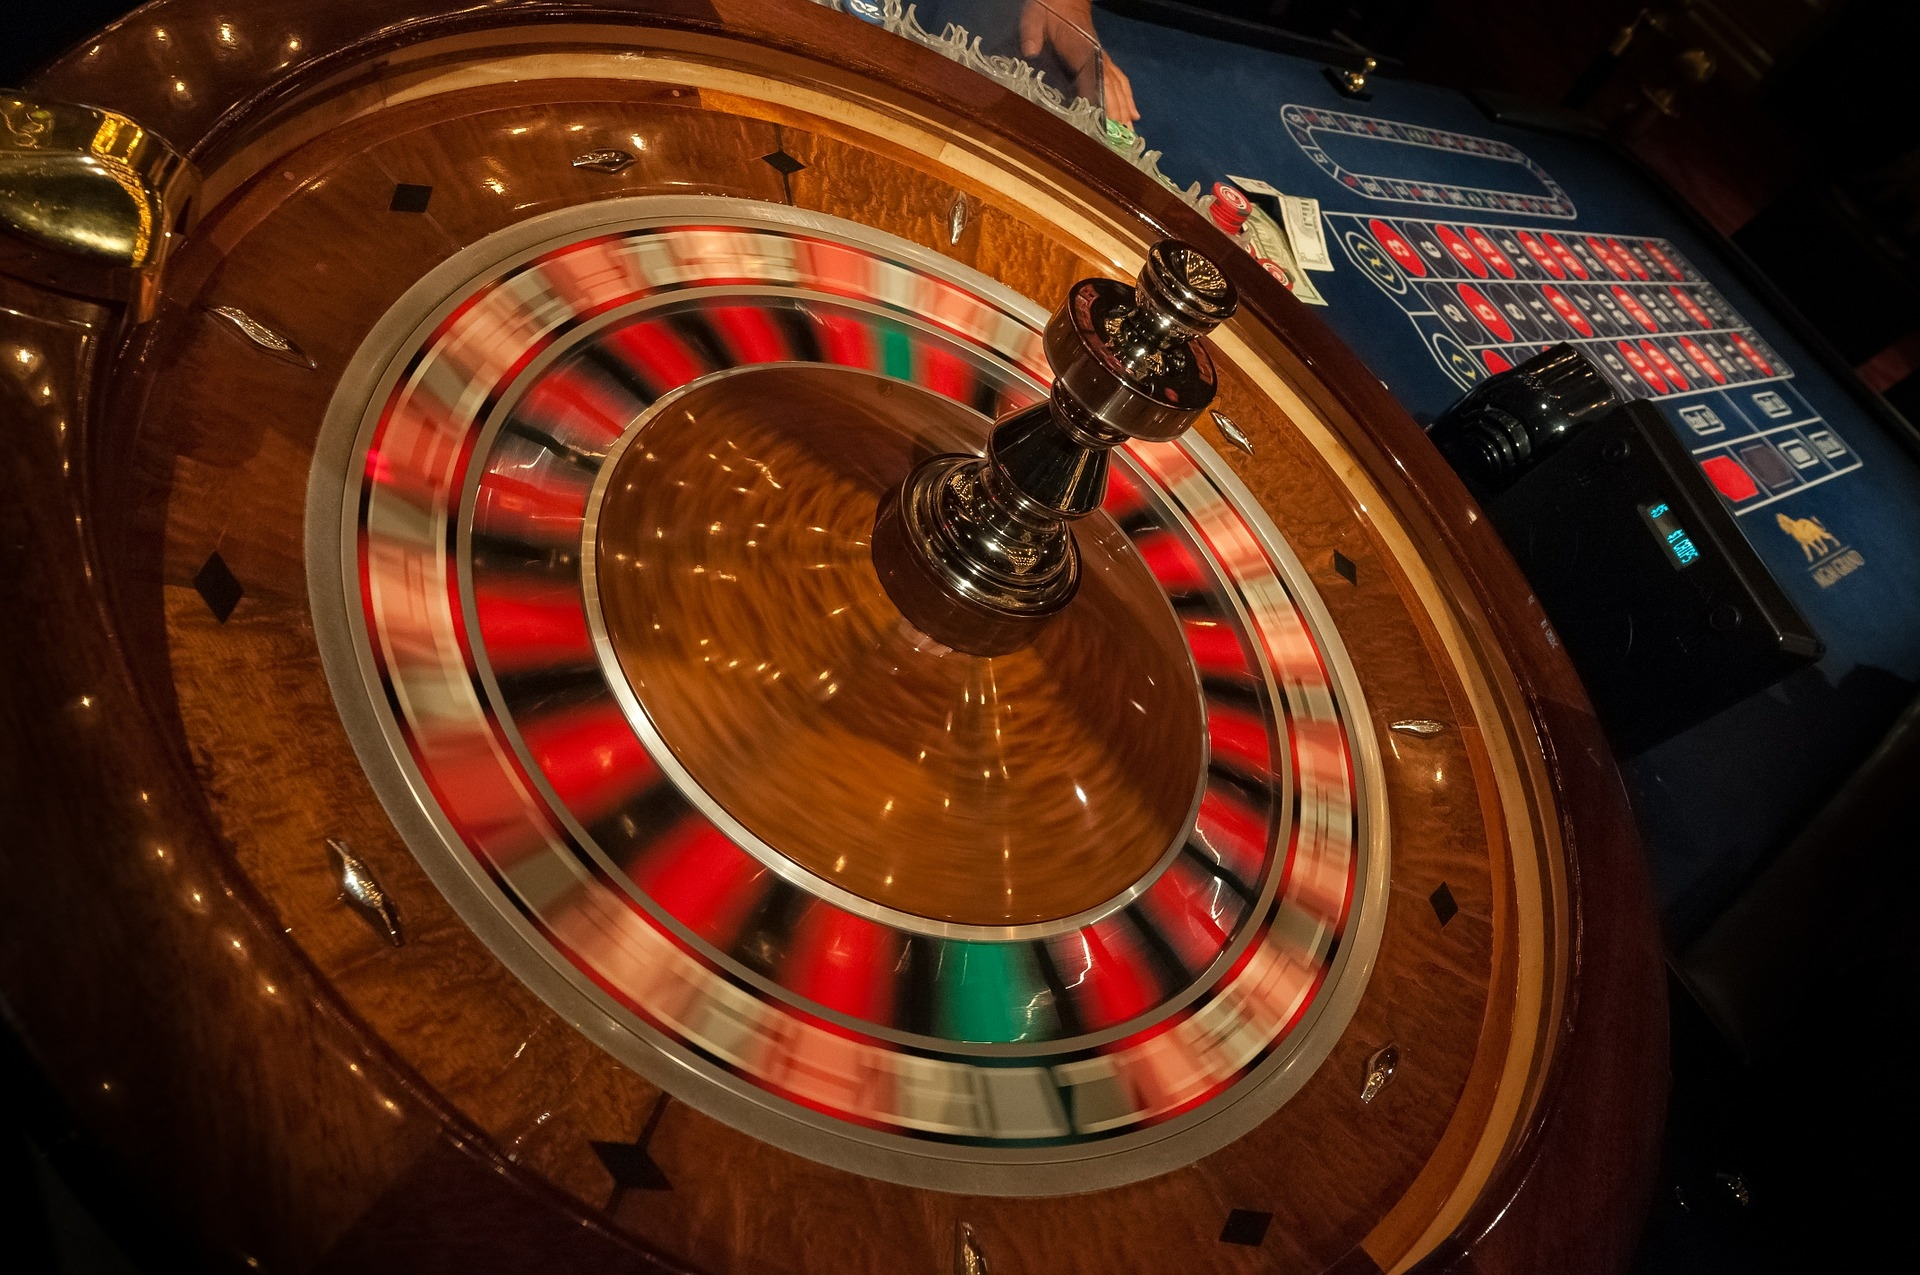 850% Match bonus casino at Gamebookers